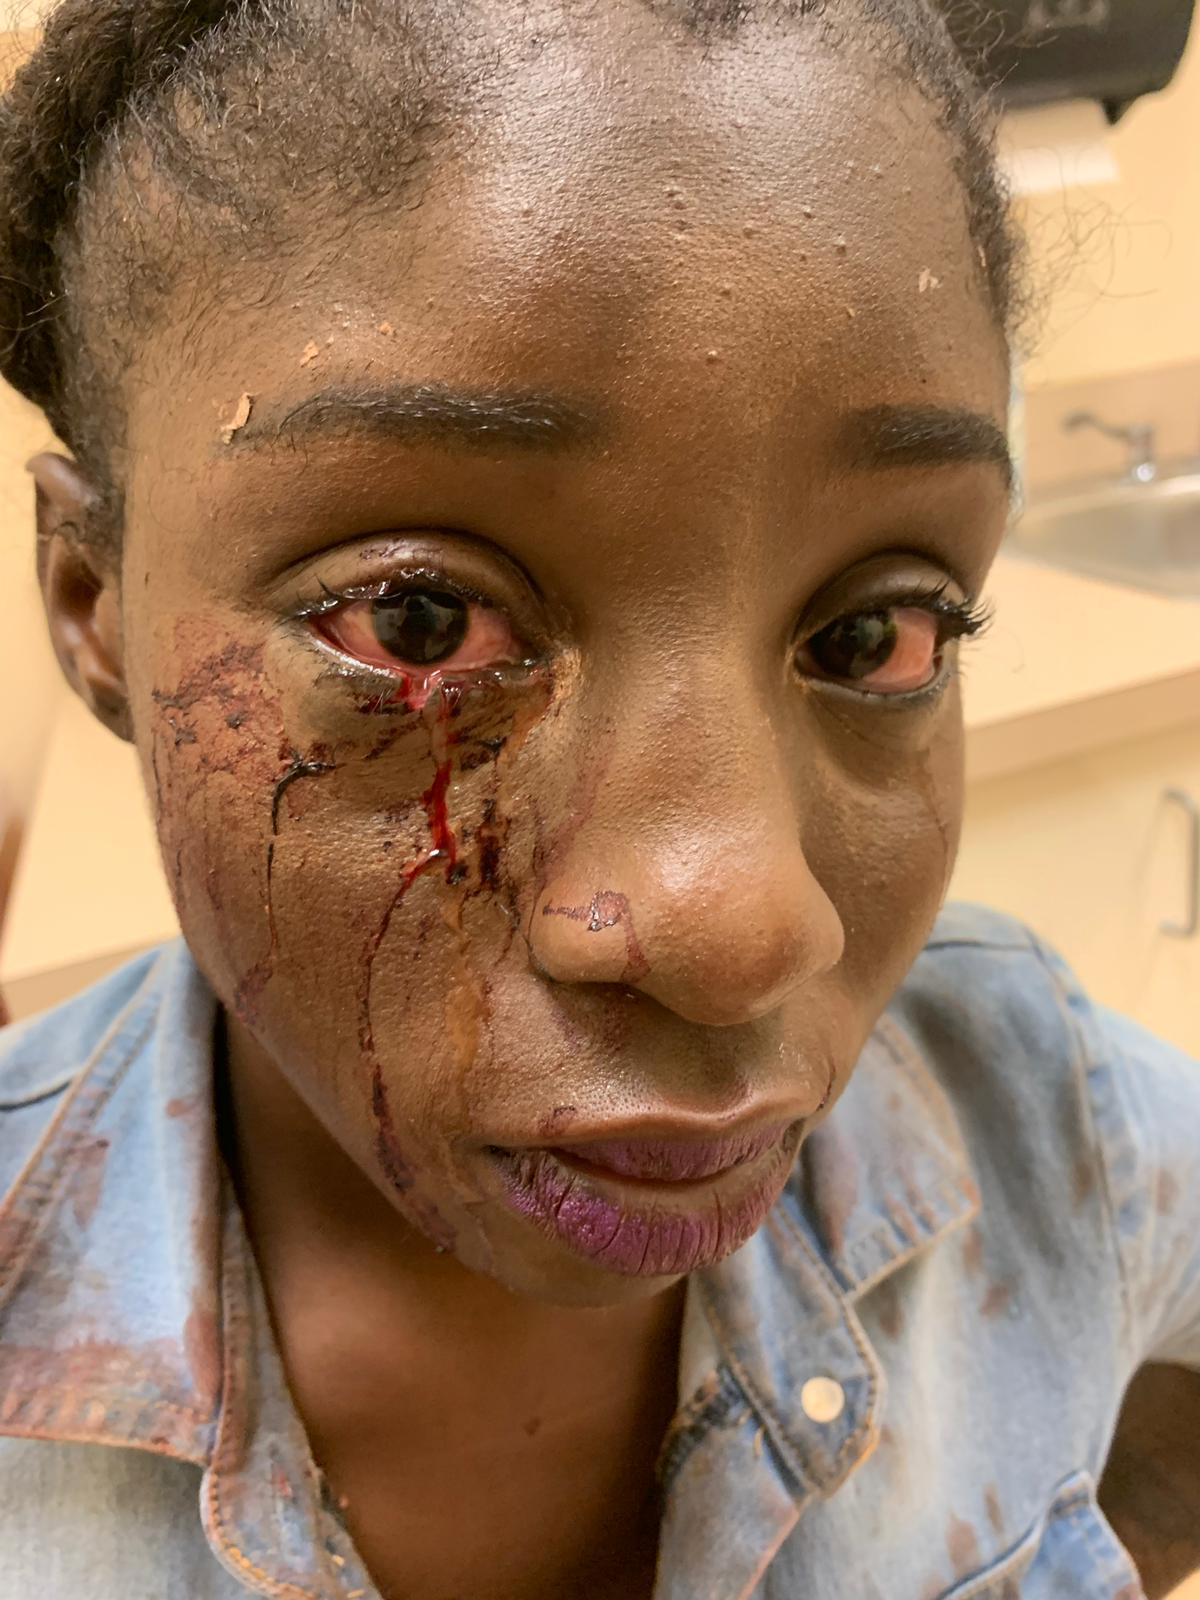 Young women allege police beat them